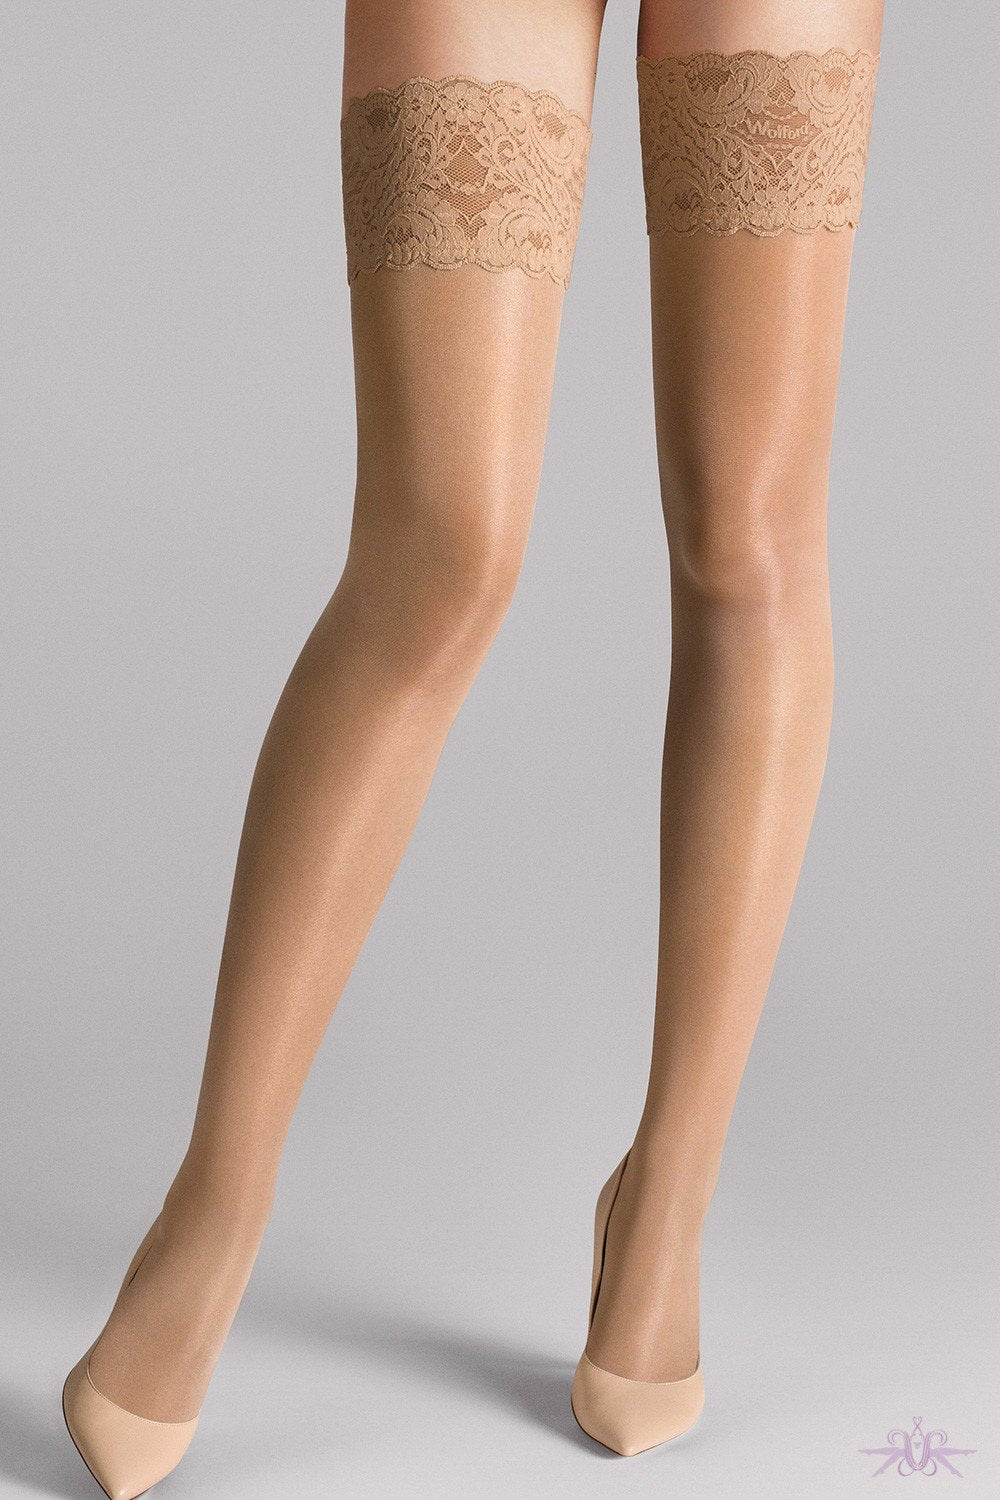 Wolford Satin Touch 20 Stay Ups - The Hosiery Box